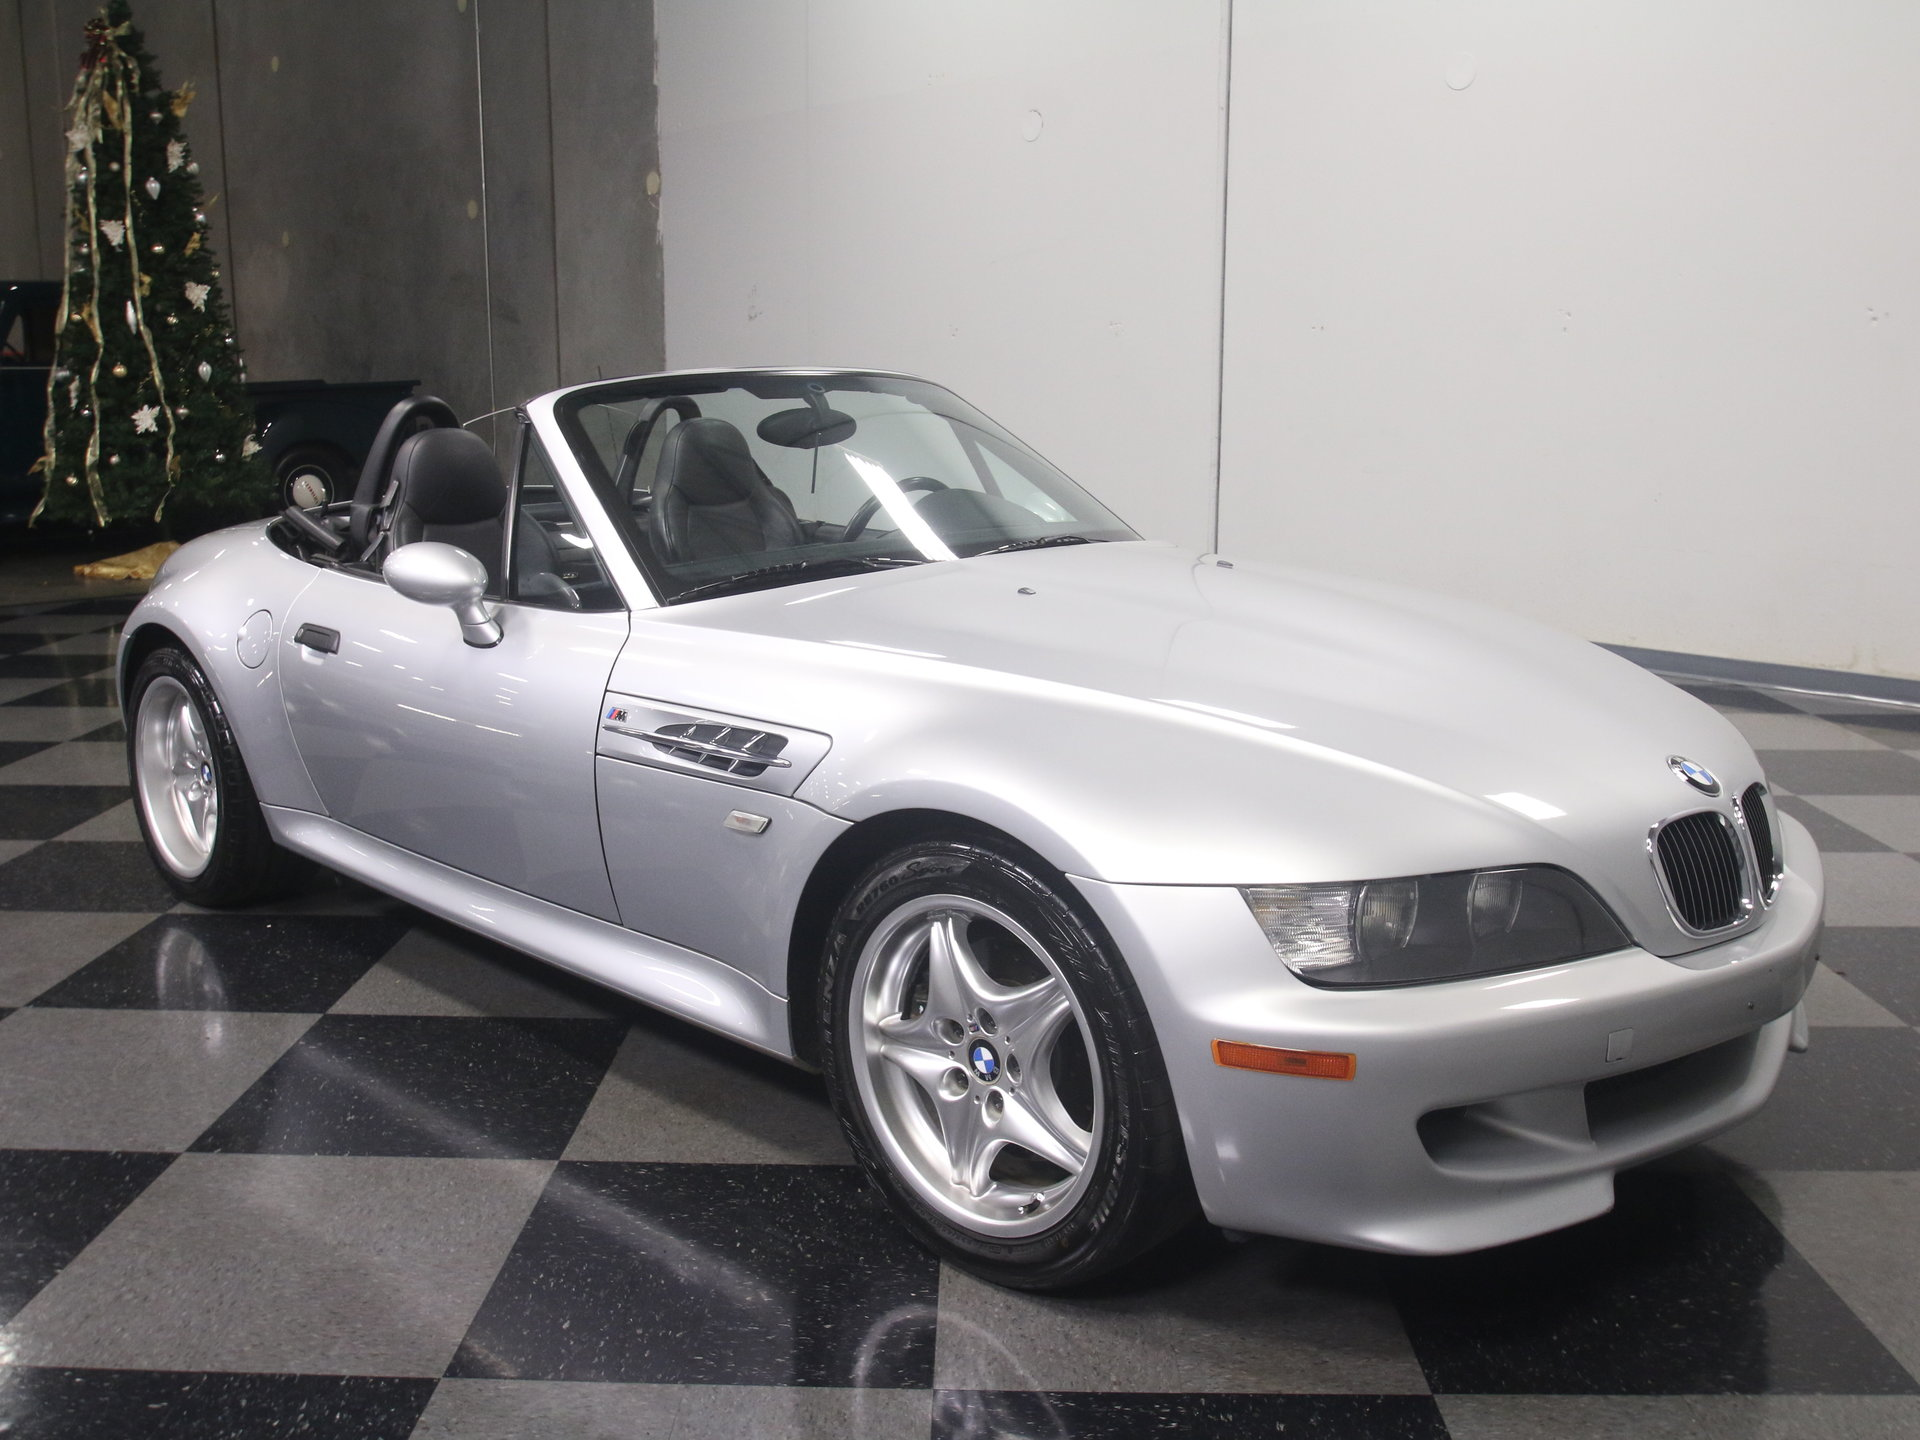 For Sale: 2000 BMW Z3. Spincar view. View 360